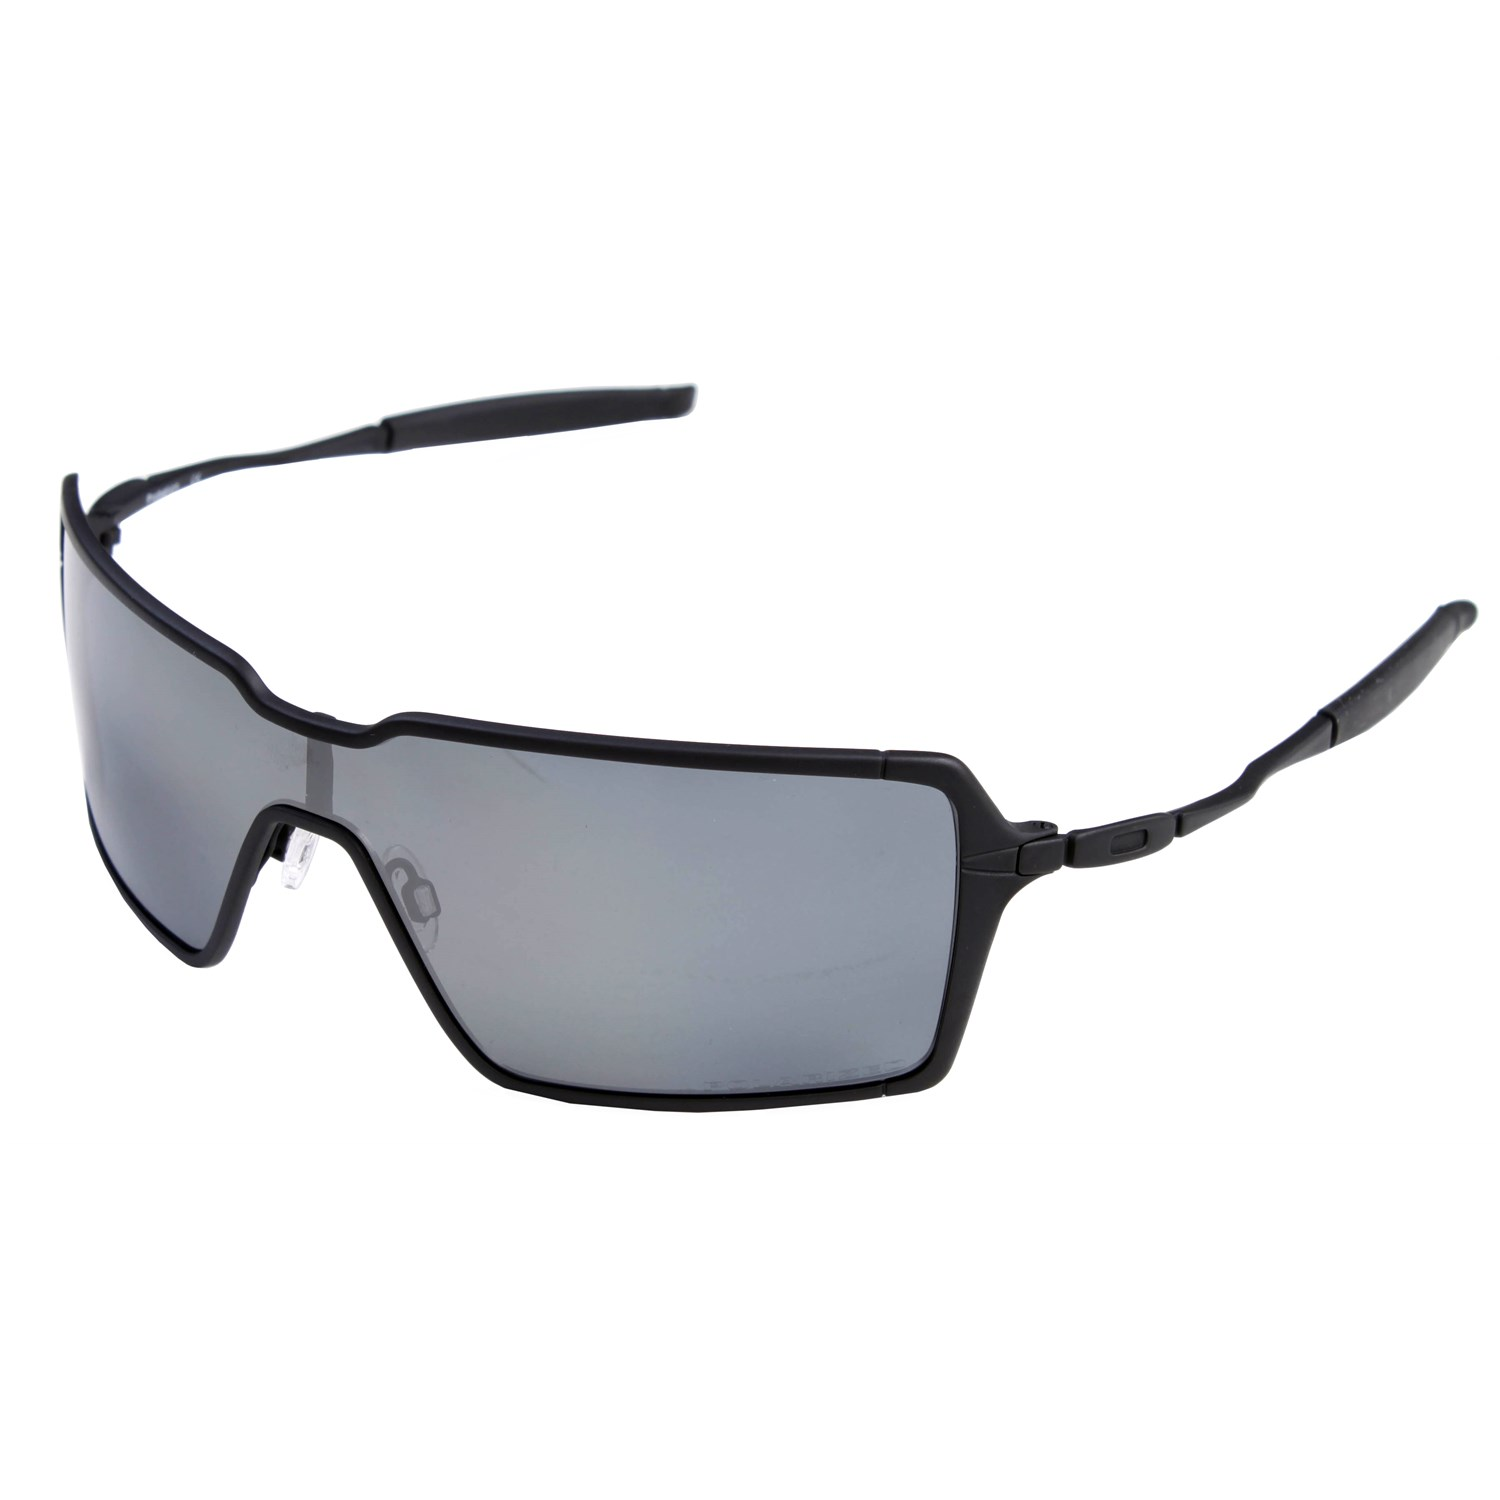 080be7f85b Fake Oakley Probation Sunglasses « Heritage Malta